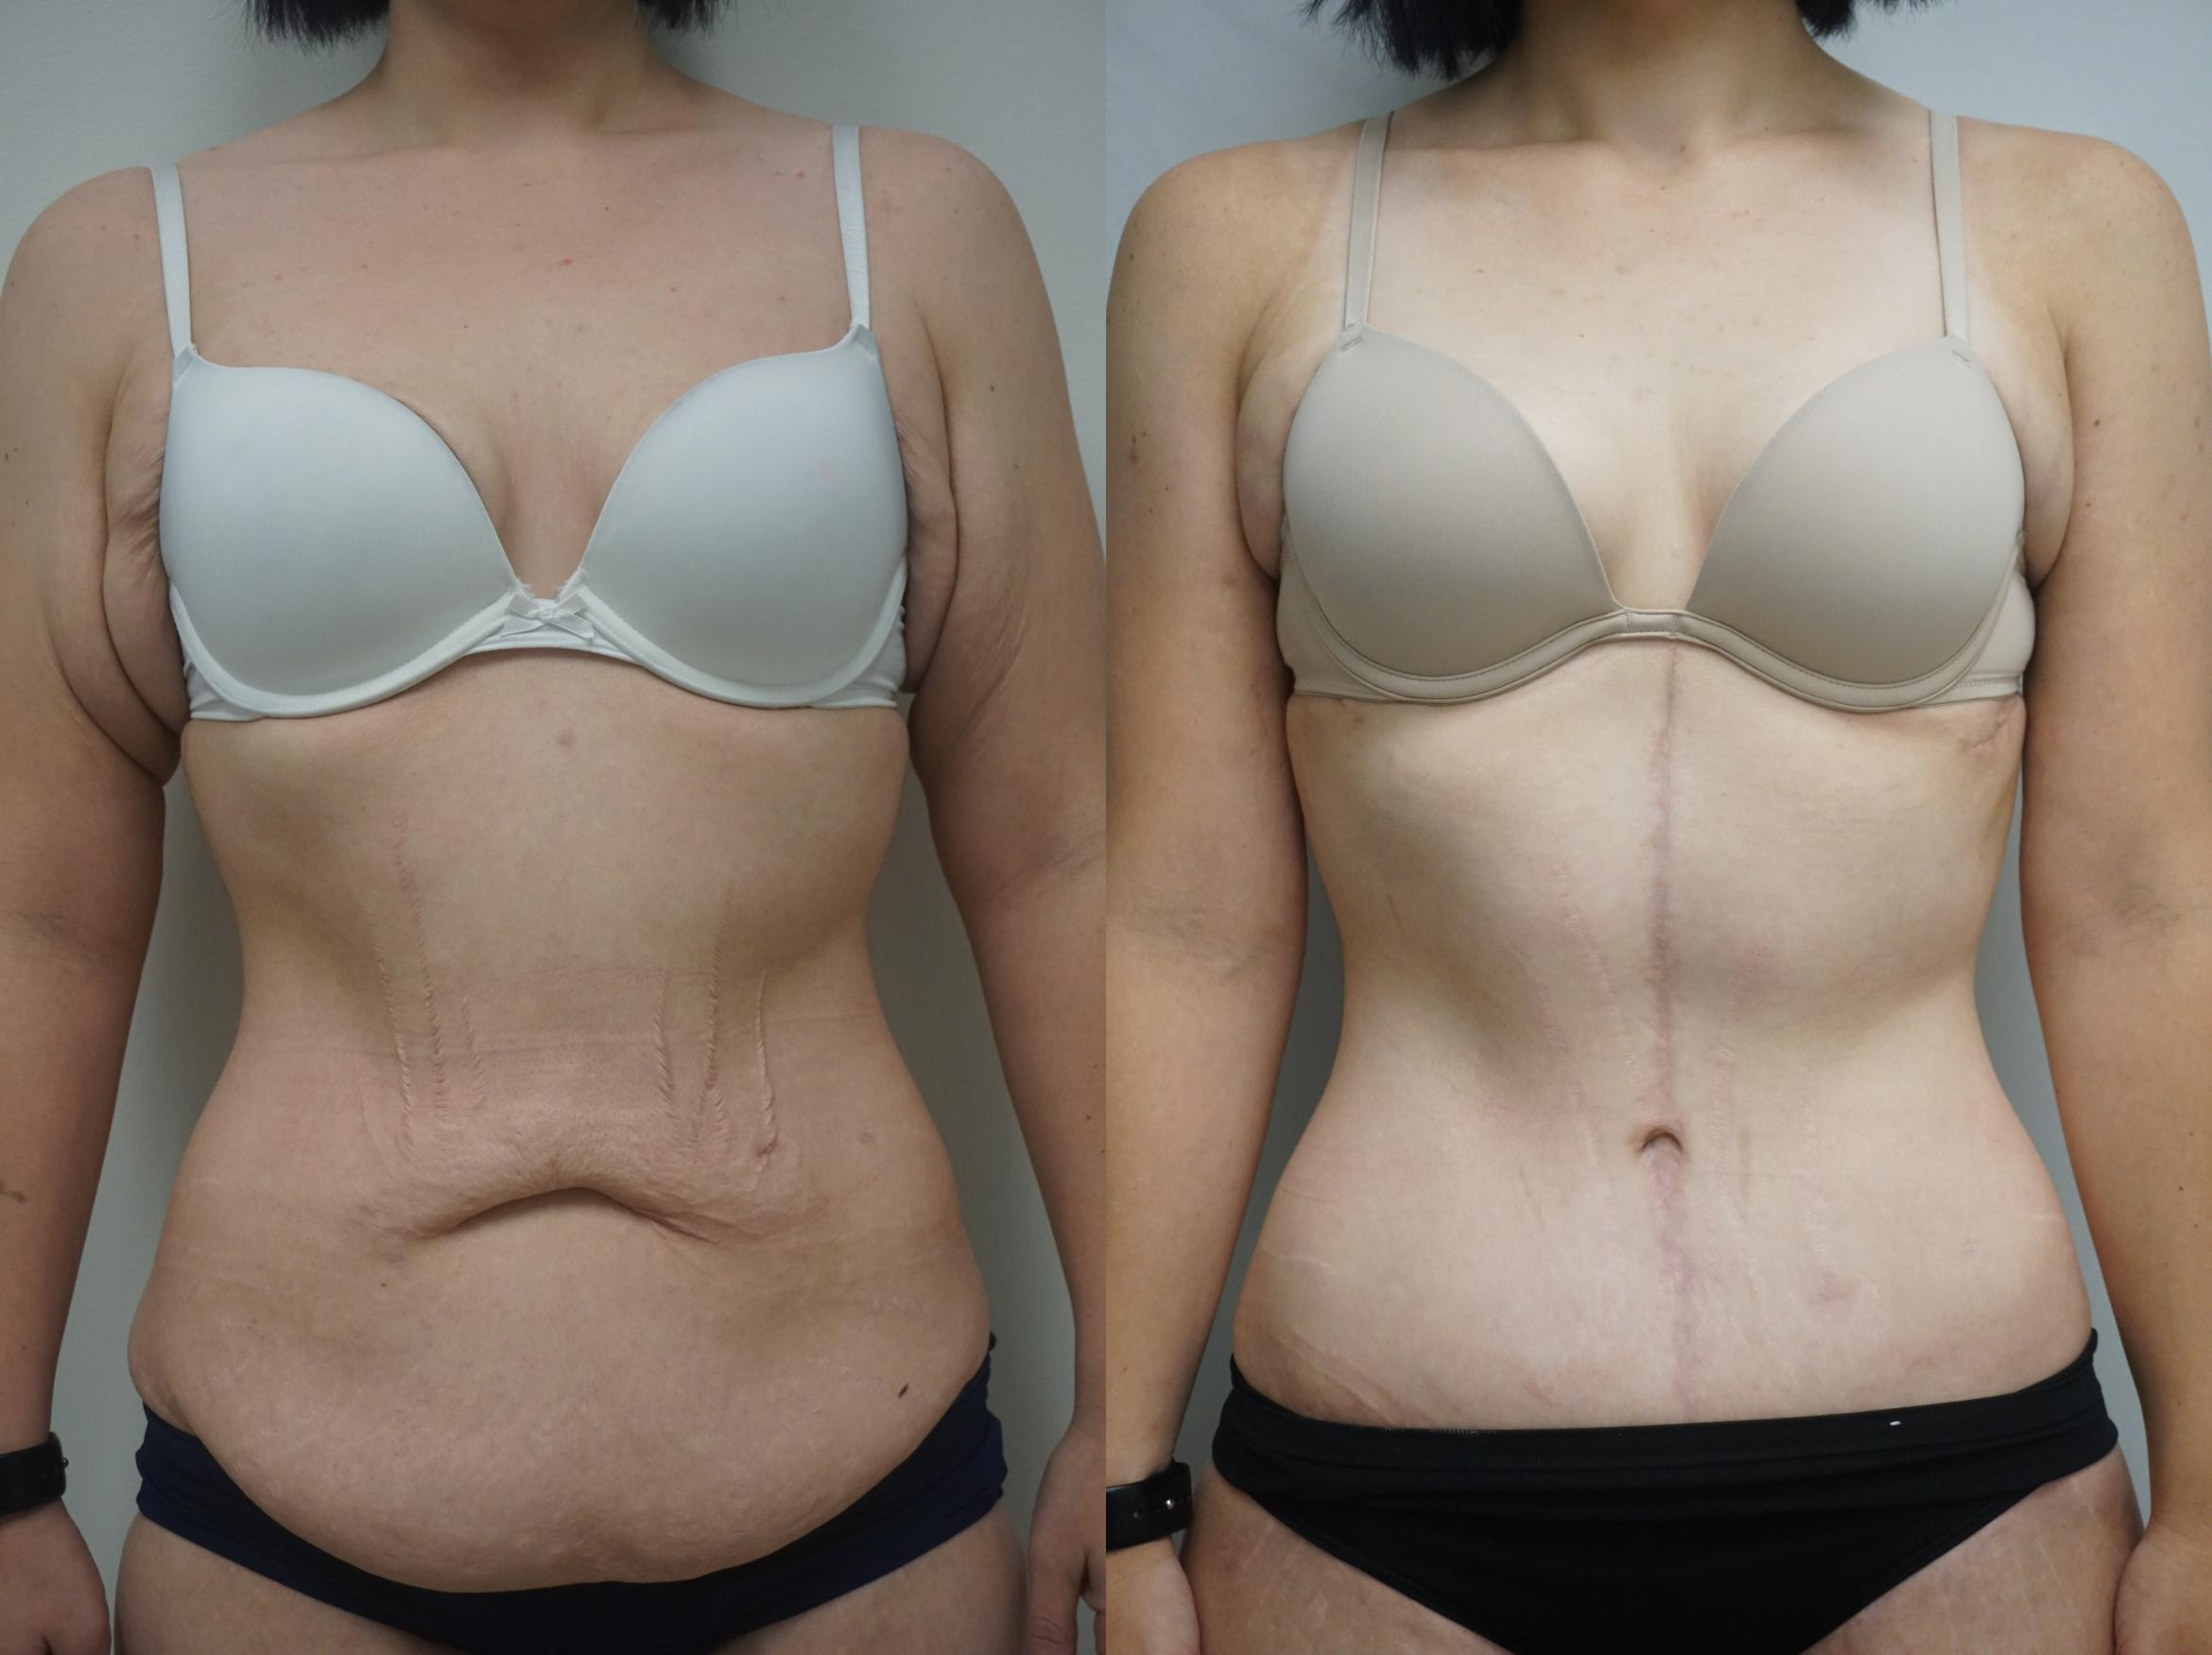 Tummy Tuck (Abdominoplasty) Case 273 Before & After View #1 | Gilbert, AZ | Dr. Josh Olson: Advanced Plastic Surgery Institute